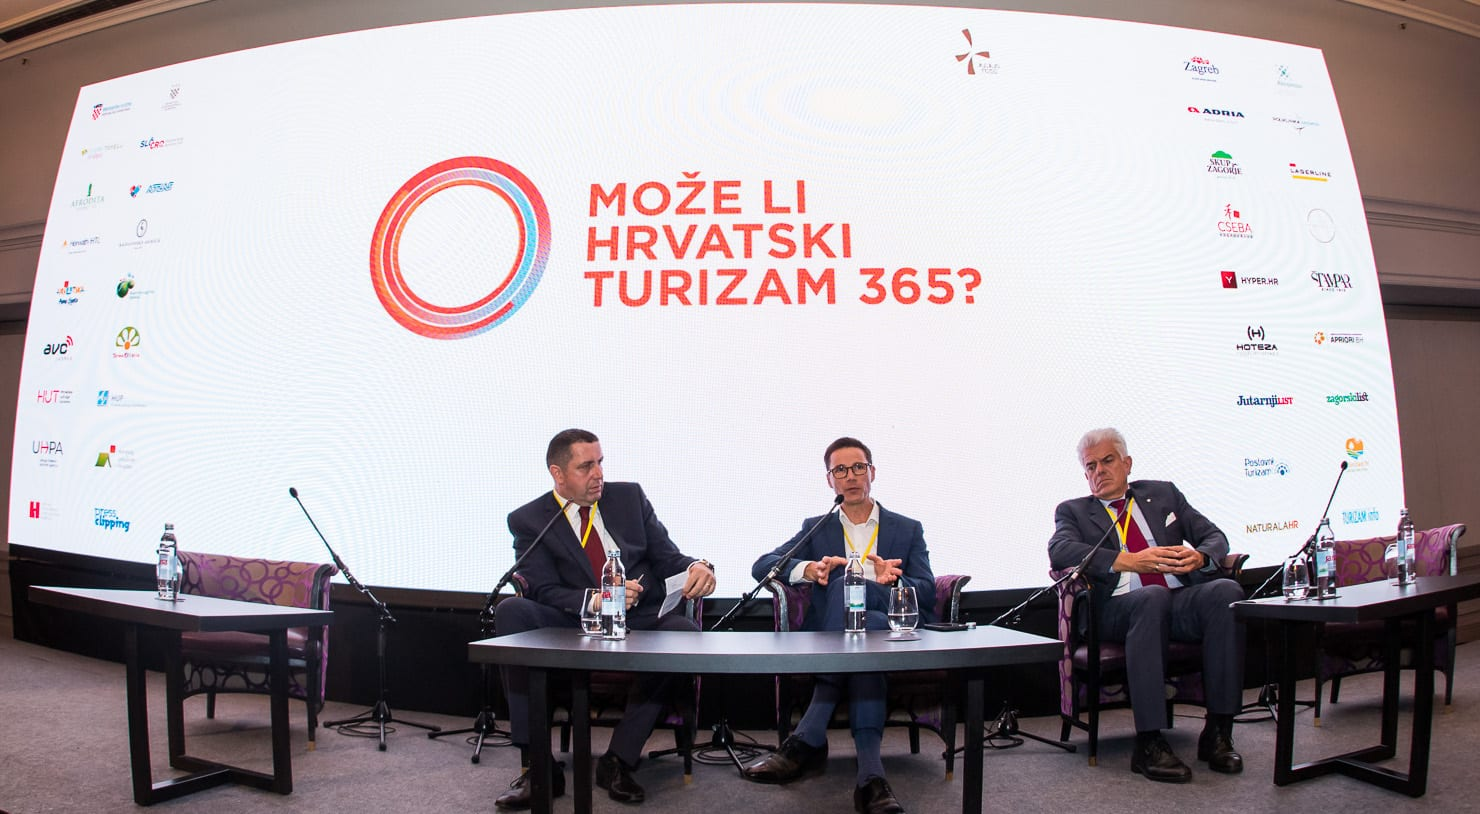 Croatian Tourism 365 conference takes place in Zagreb